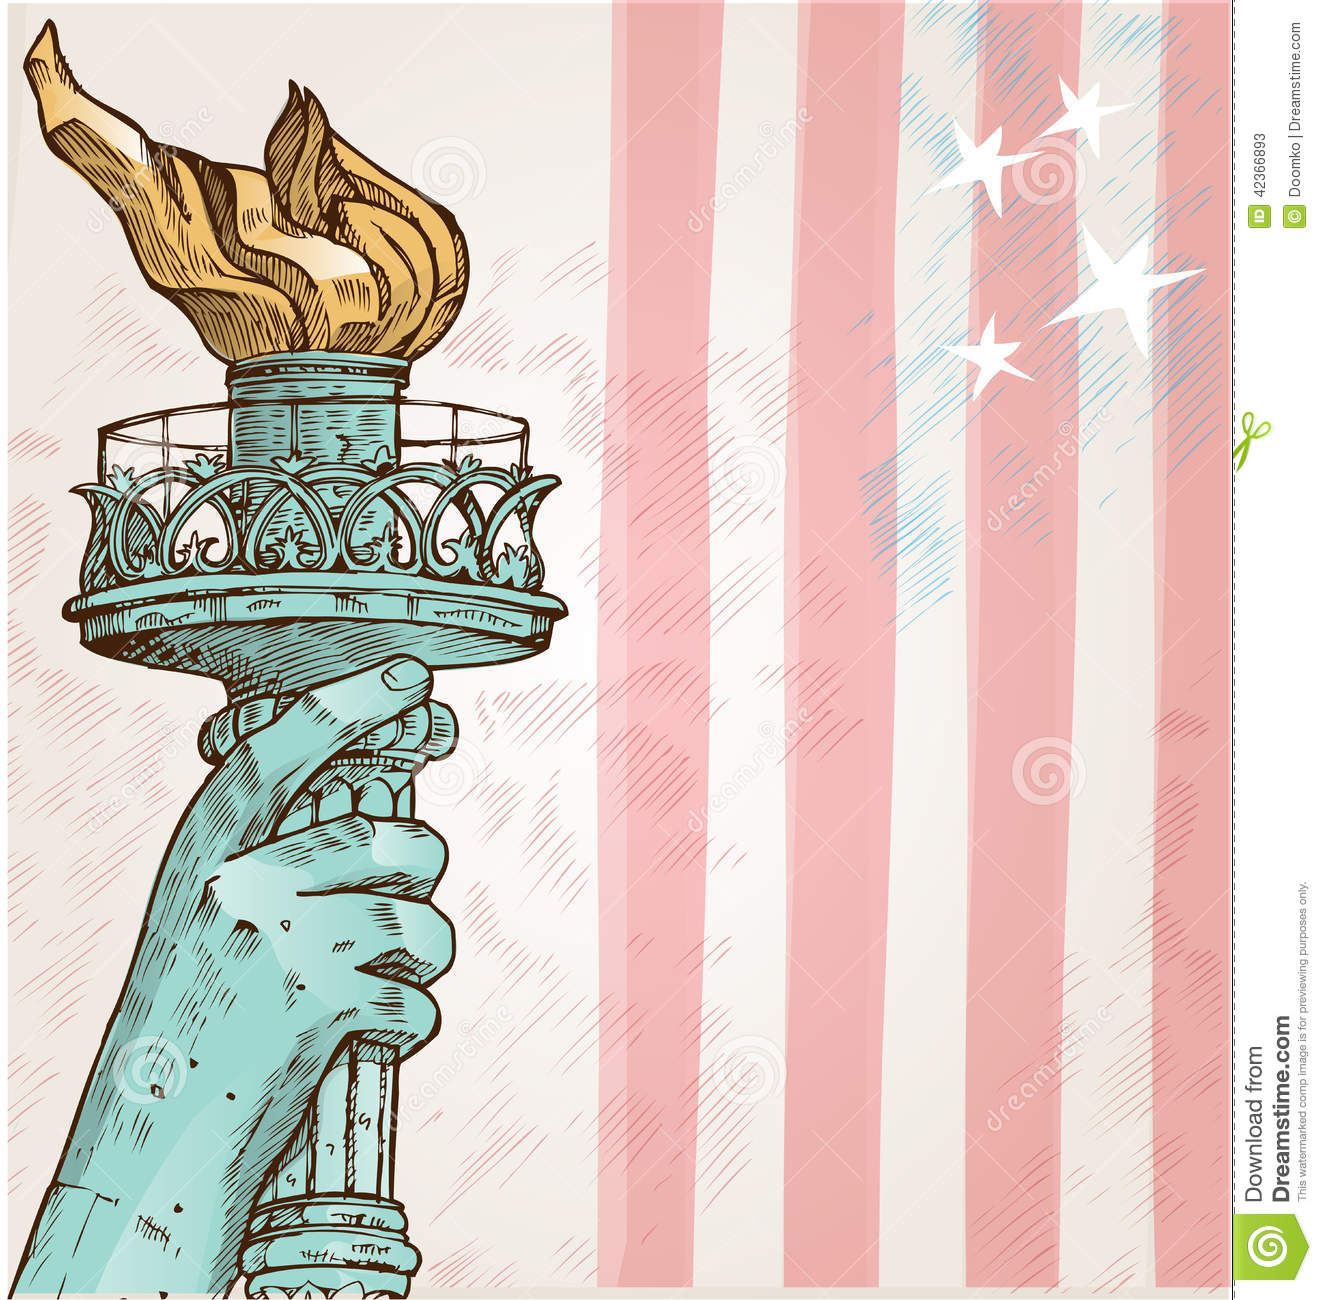 American flag and statue of liberty torch clipart.